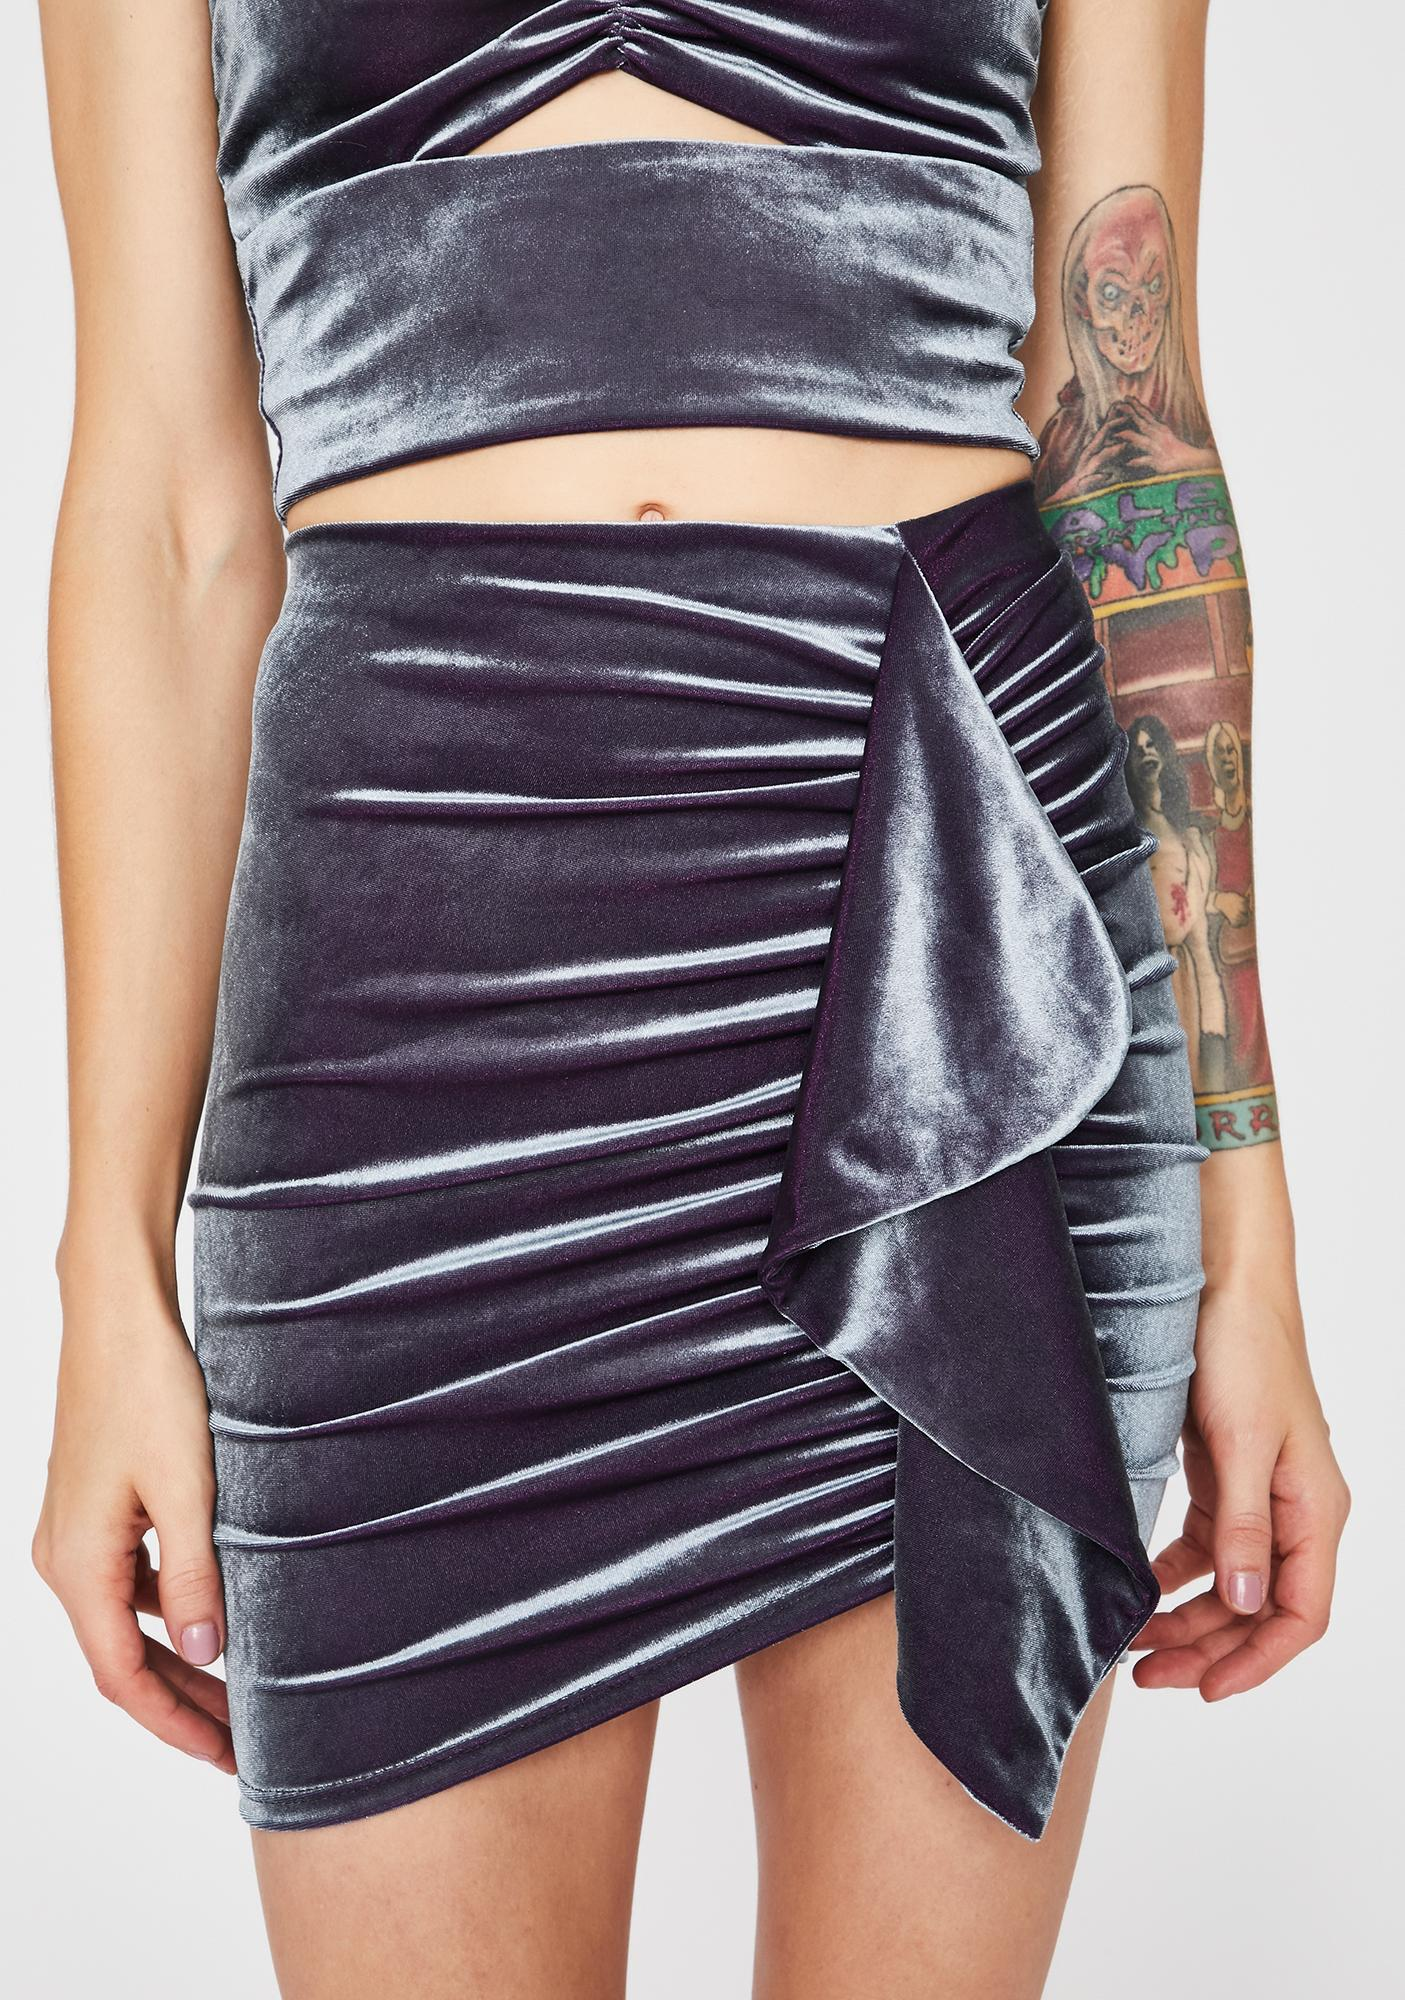 Moon Velvet Tears Mini Skirt